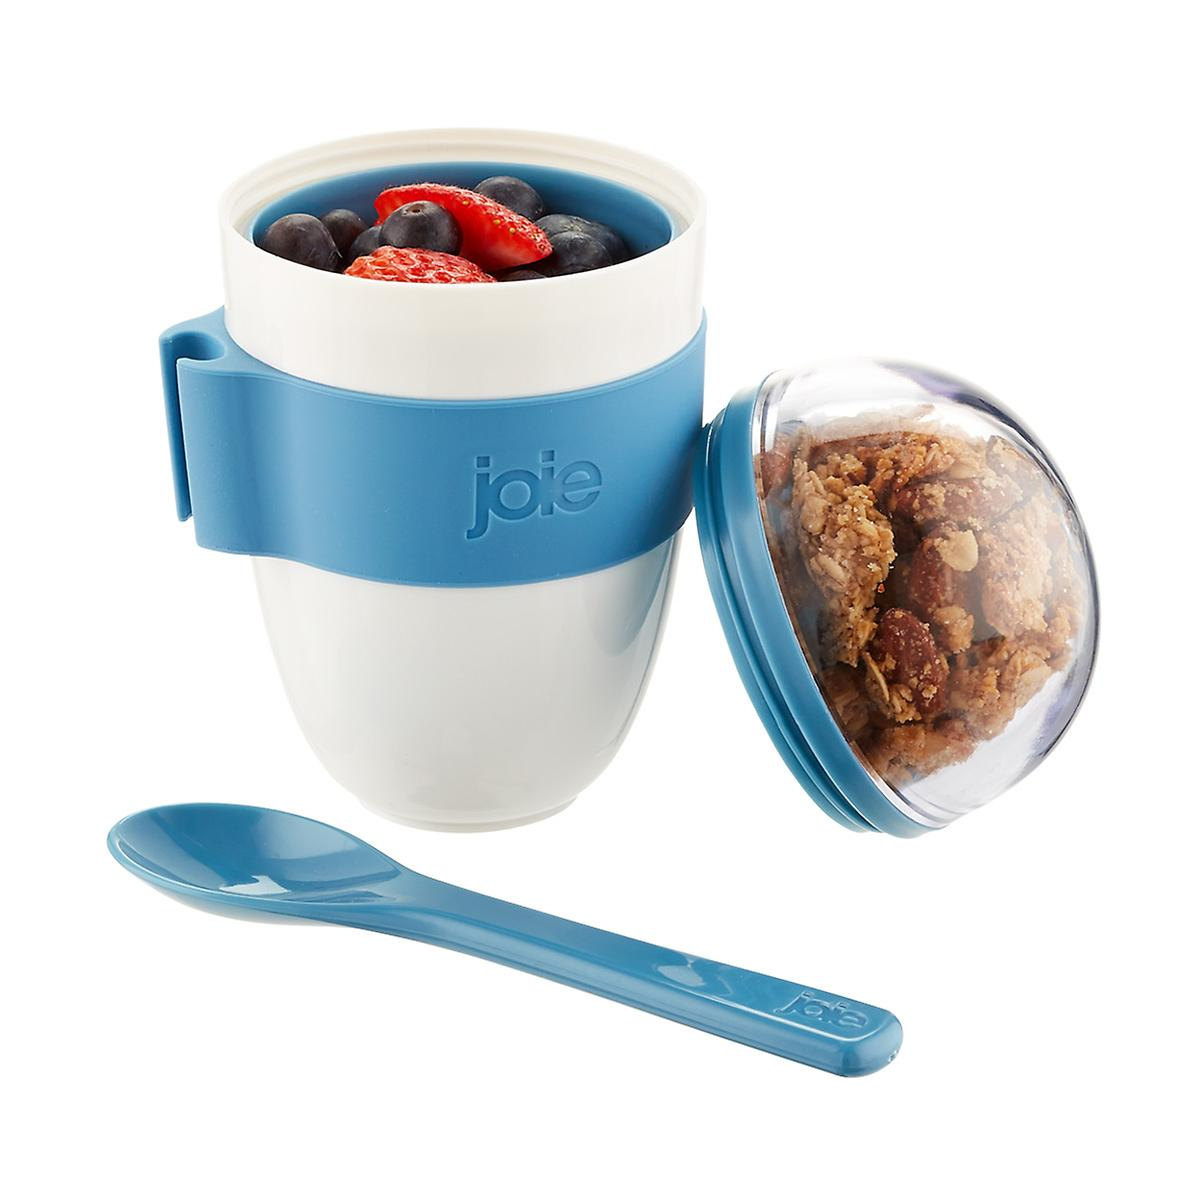 Yogurt-on-the-Go | The Container Store